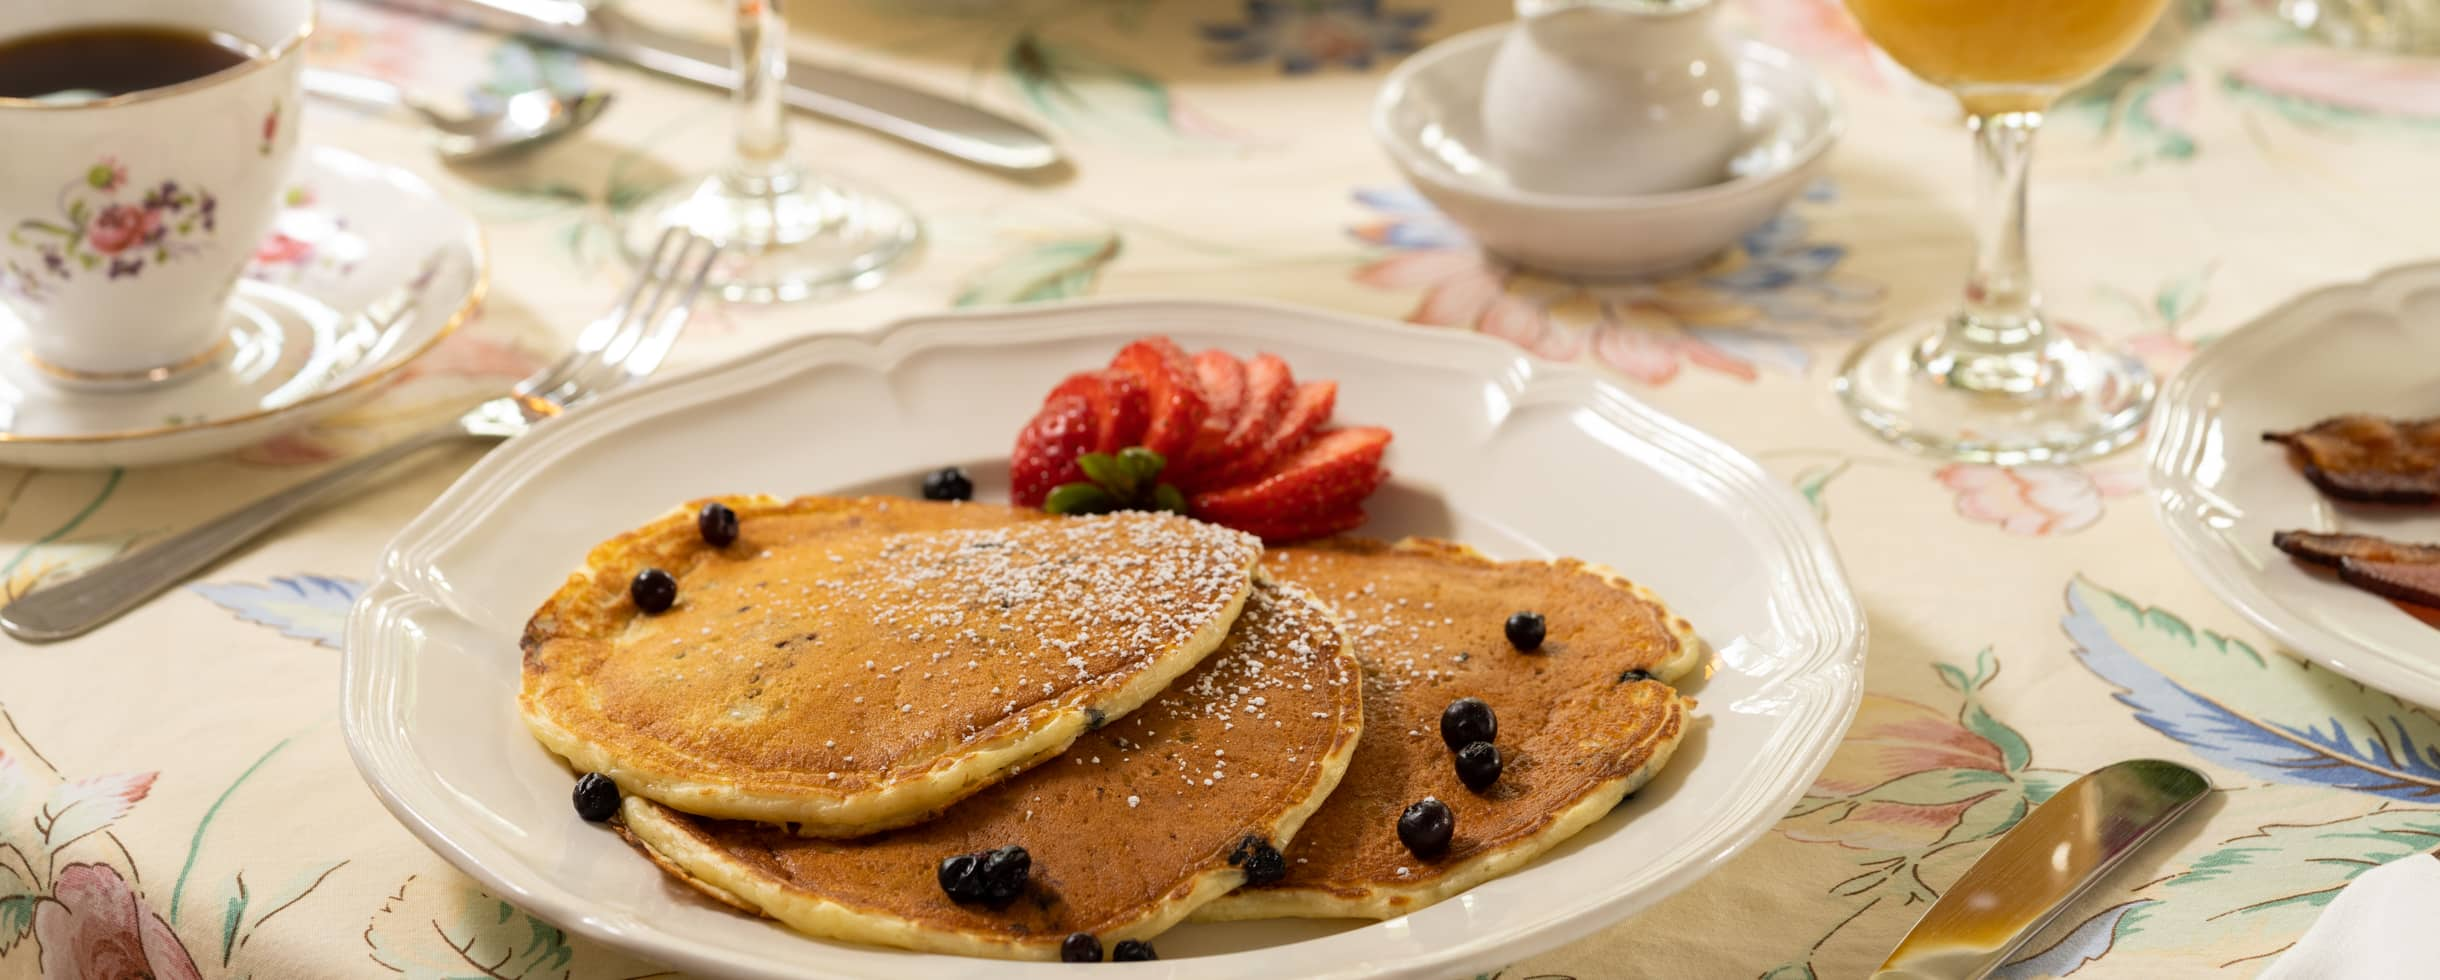 blueberry pancakes served with fresh cut strawberries